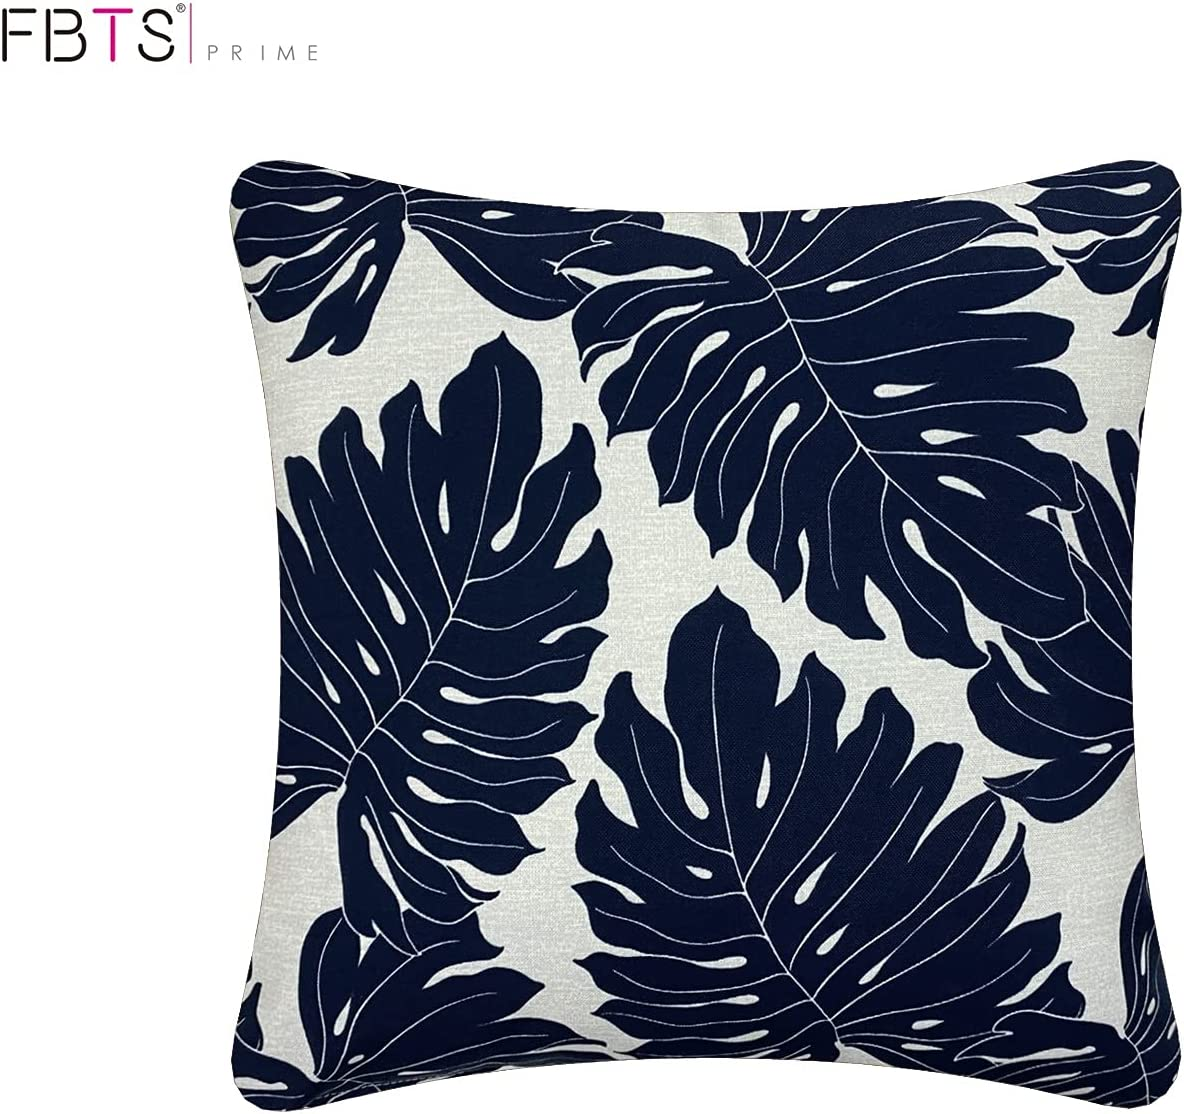 Buy FBTS Prime Outdoor Decorative Pillows with Insert Navy Leaves ...